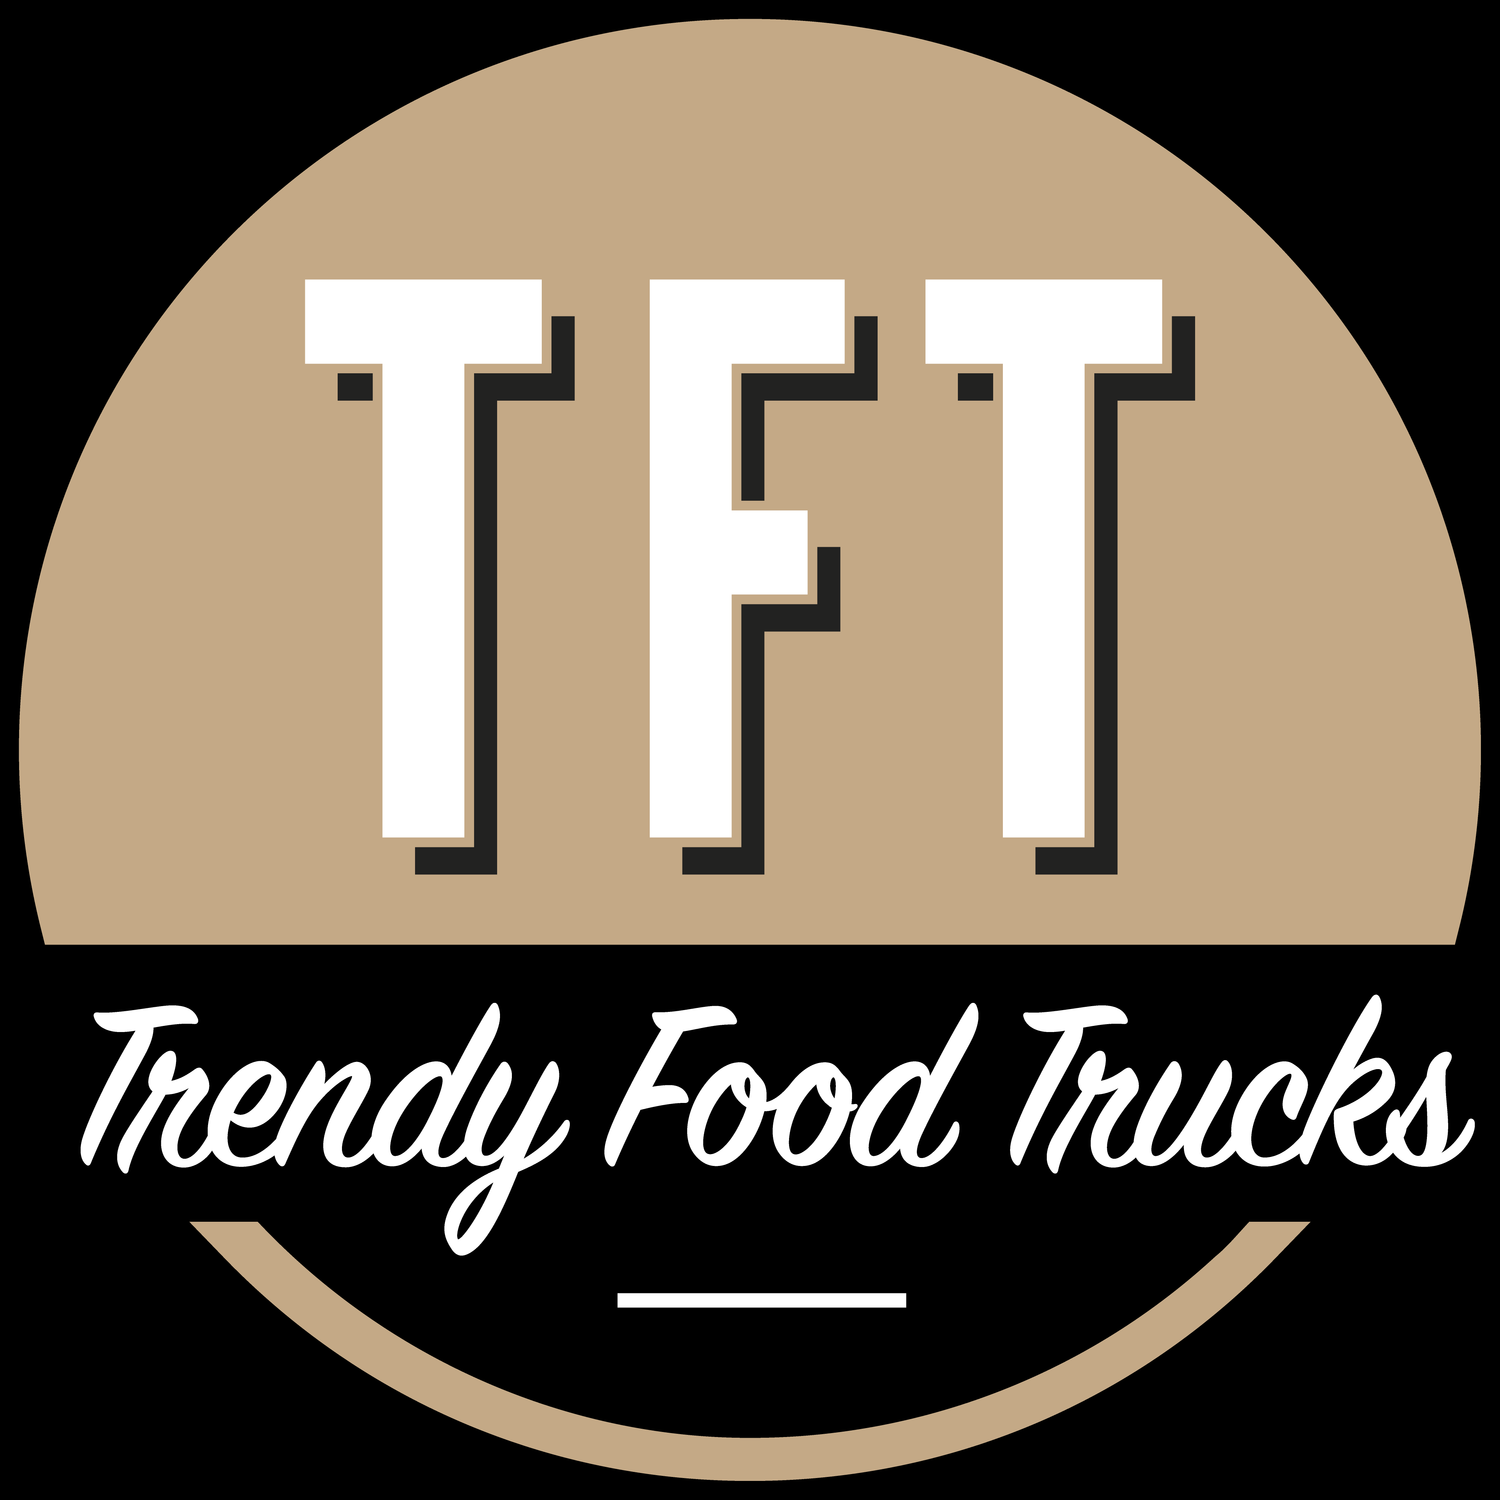 Trendy Food Trucks